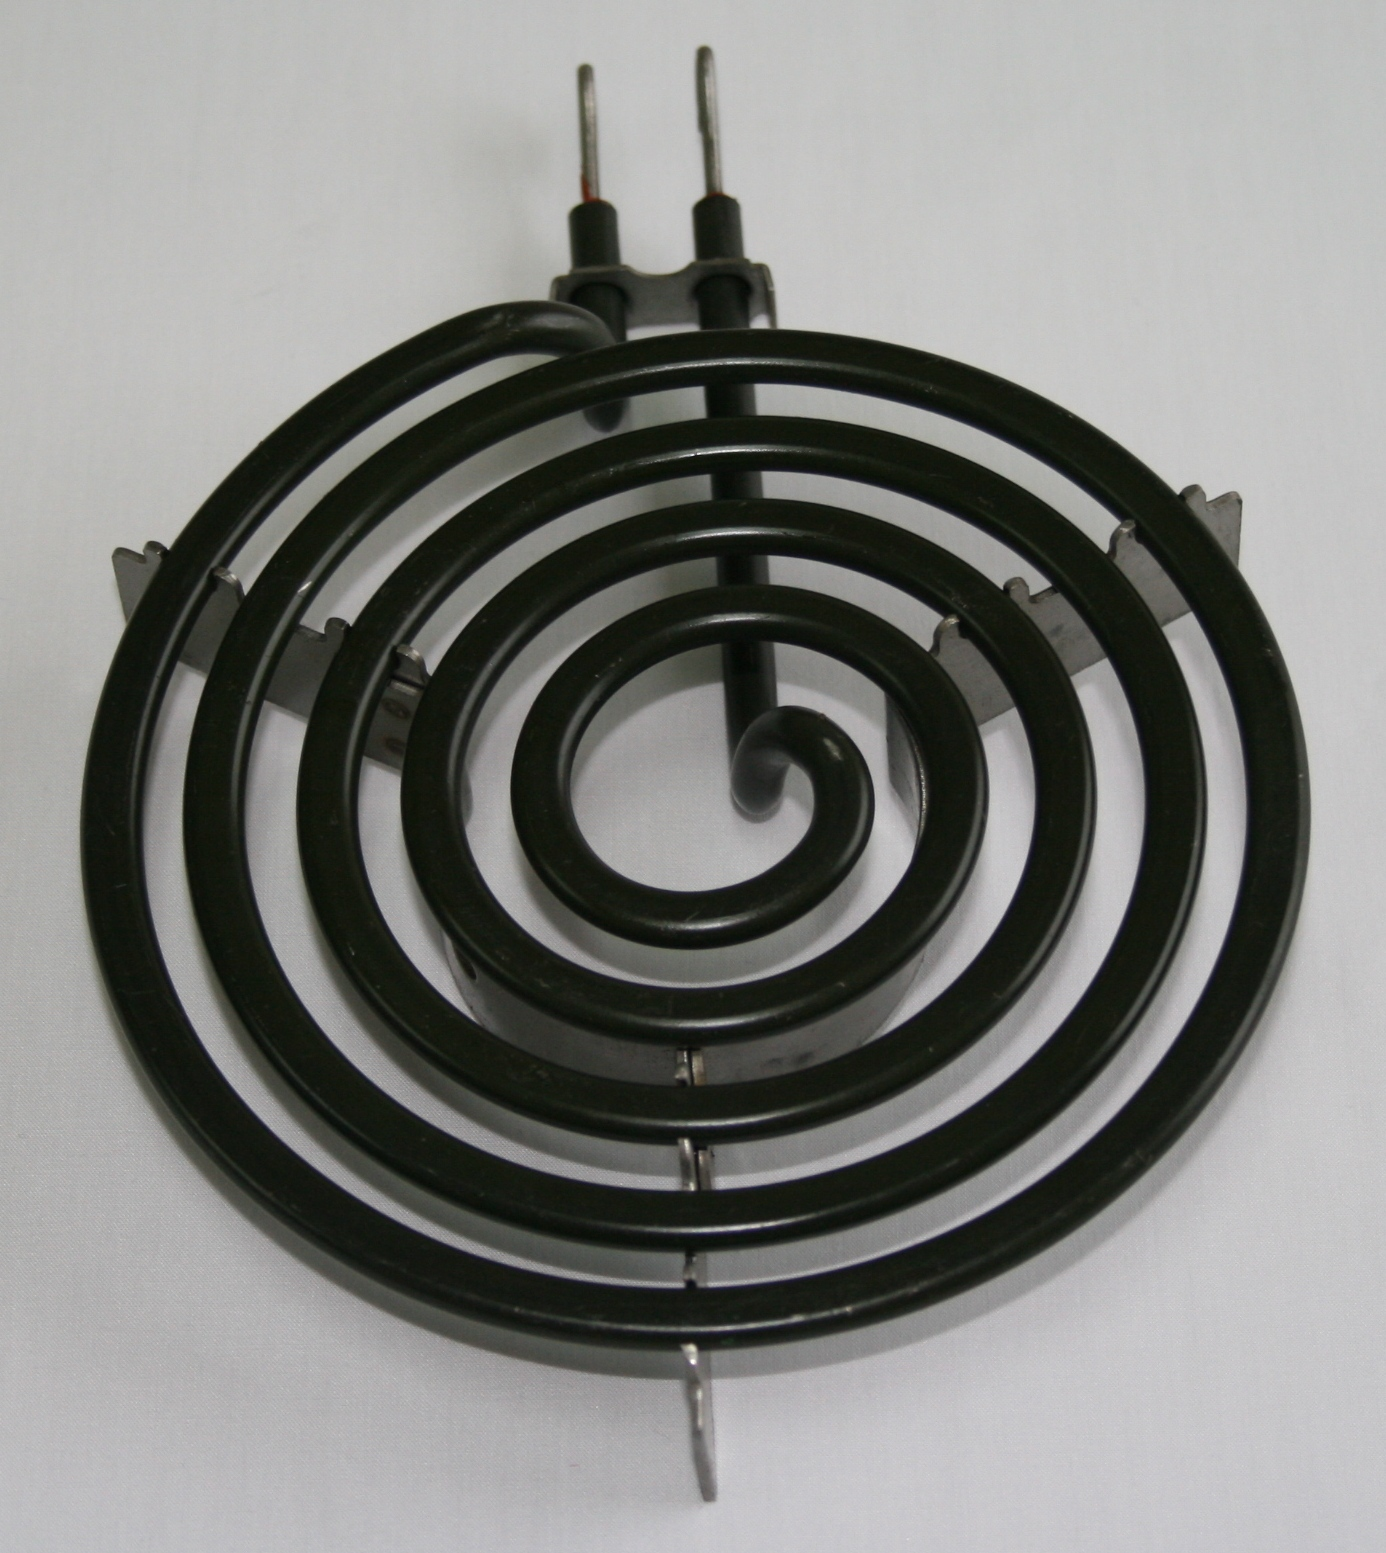 Appliance parts-Simpson stove element 8 inch plug in suit models 1U and 2U